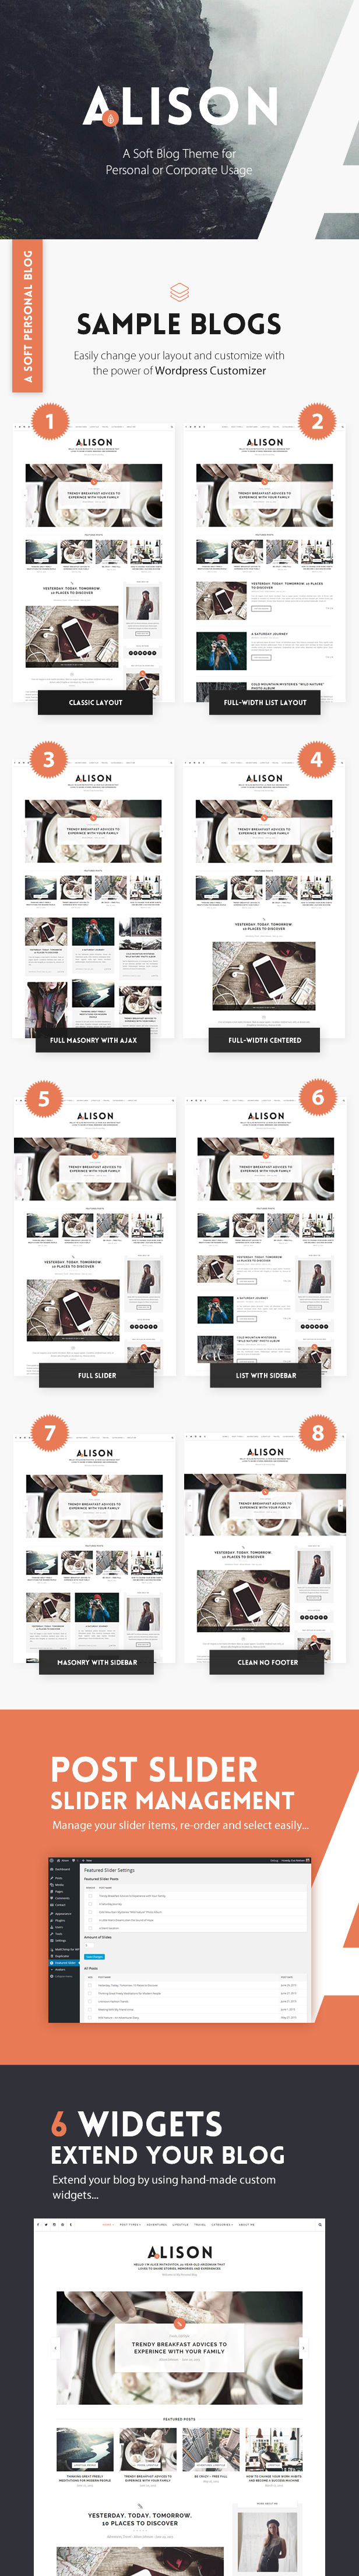 Anne Alison - Soft Personal Blog Theme by angrygorilla | ThemeForest